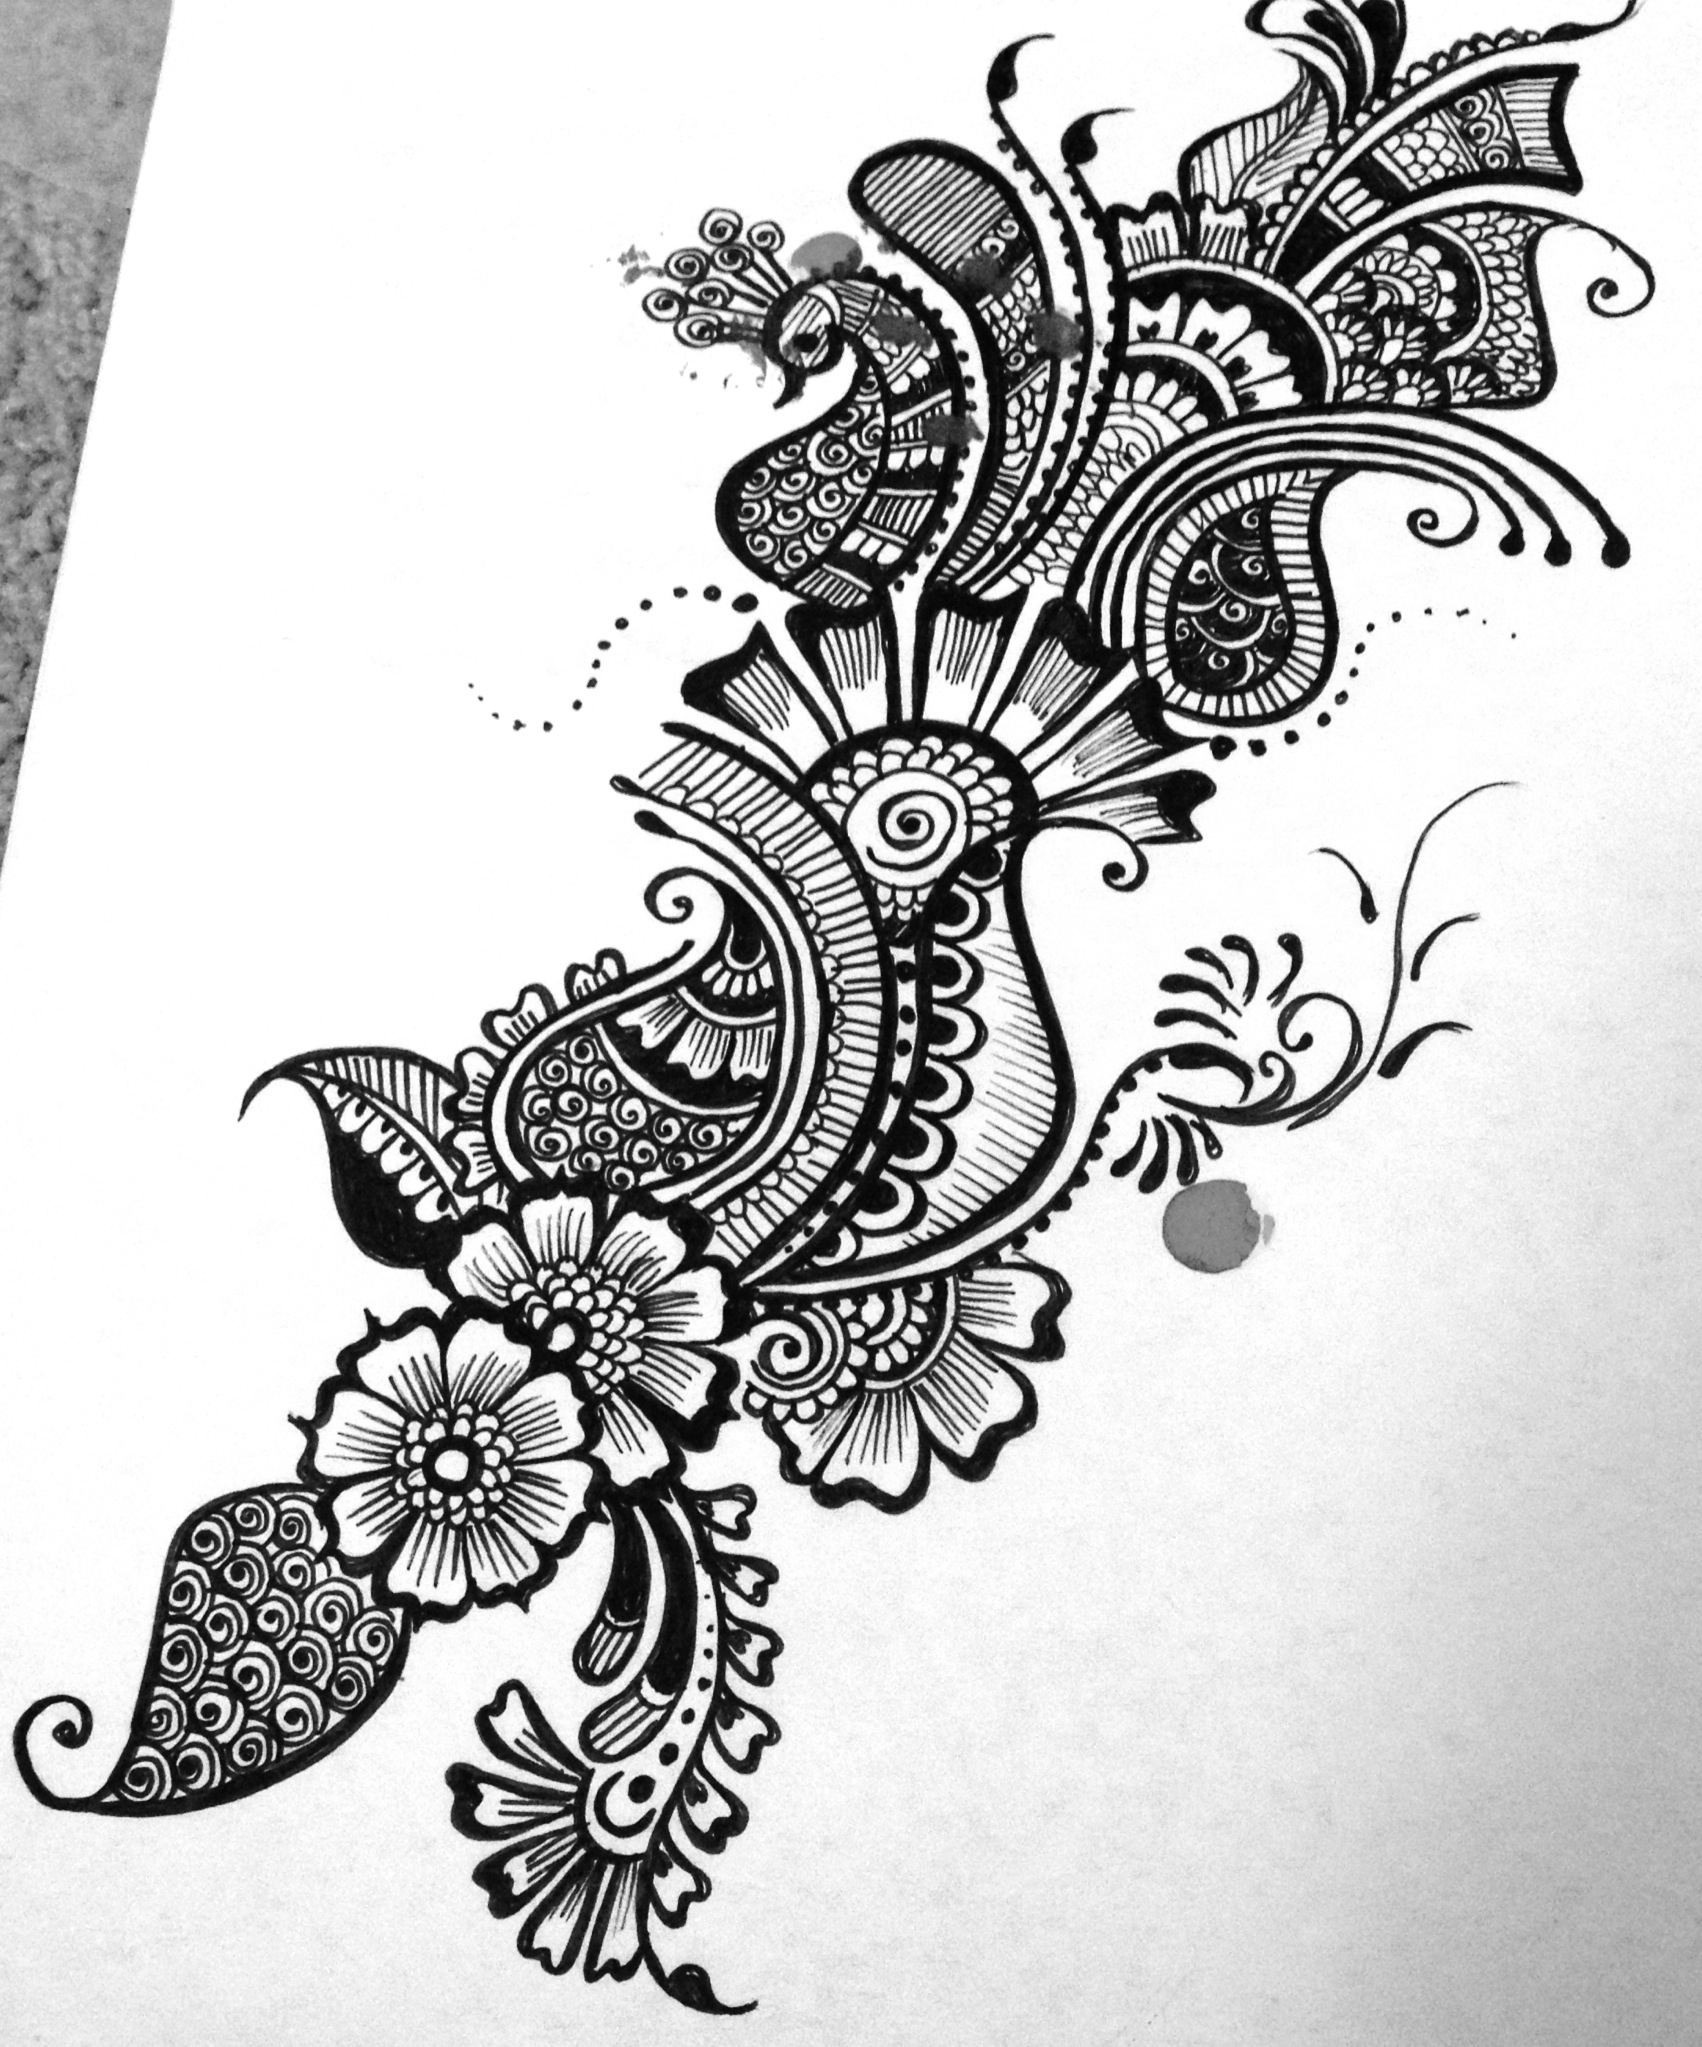 Mehndi Design Line Art : Henna designs drawing at getdrawings free for